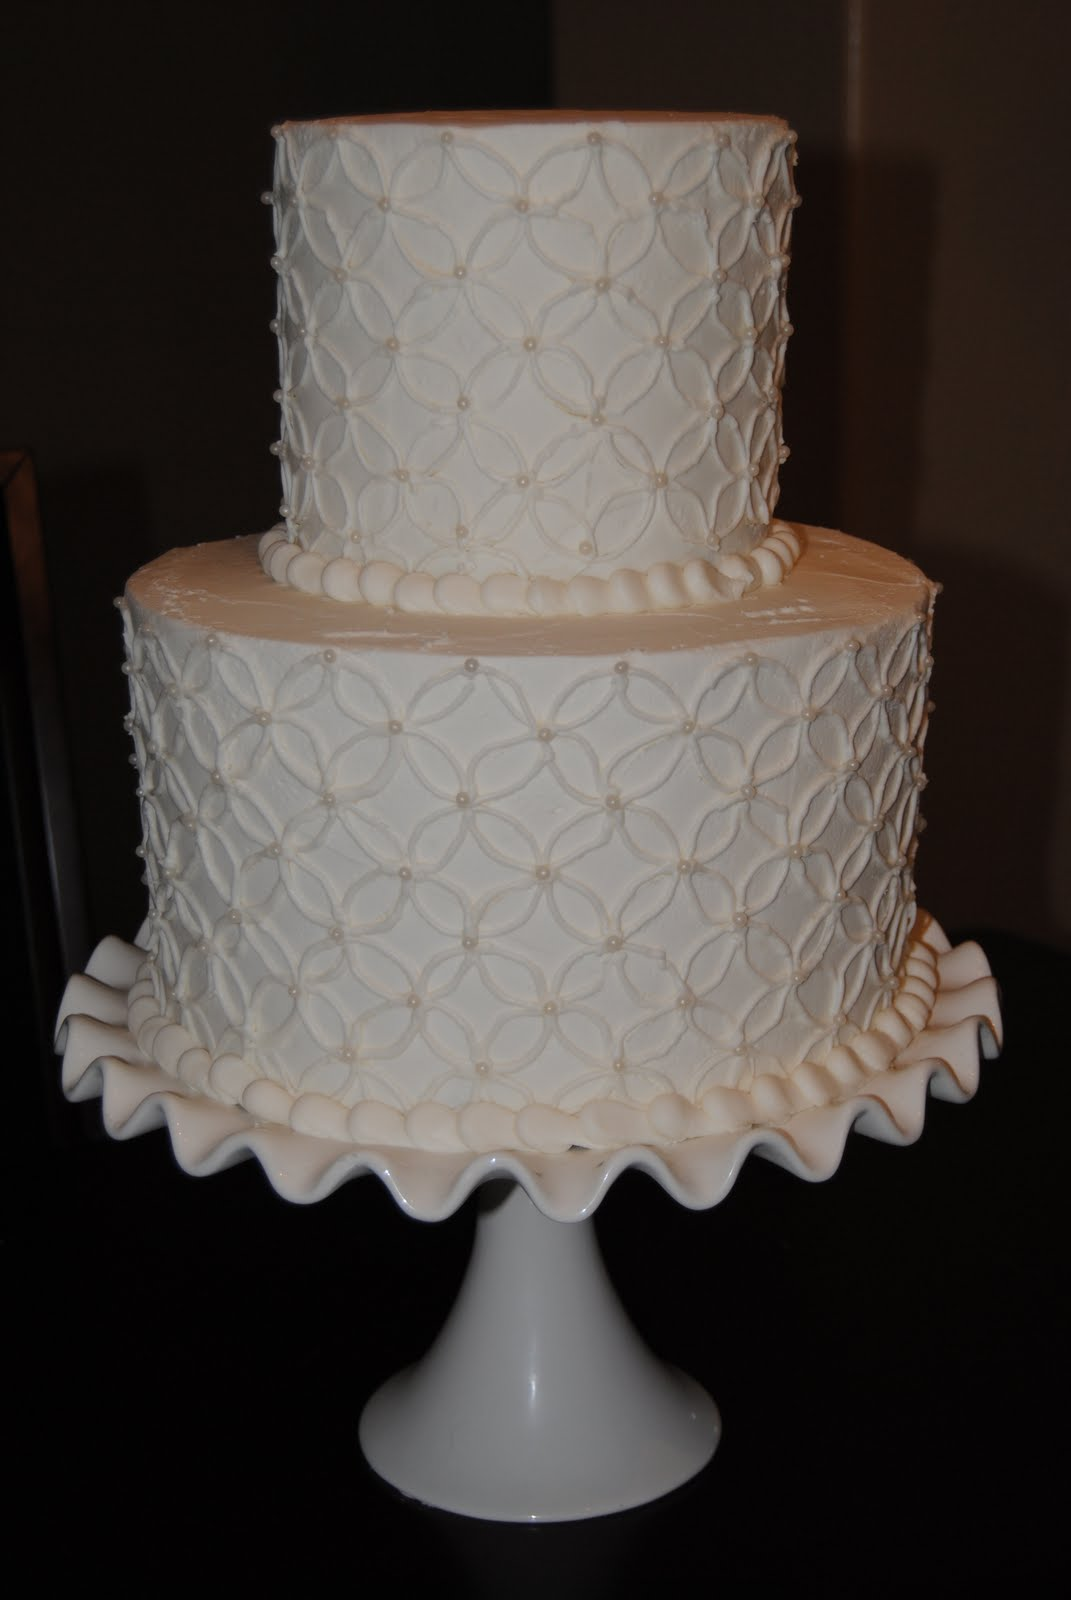 Wedding Cake Design Patterns : SASSY CAKES - Your Fondant Cake Design Destination ...